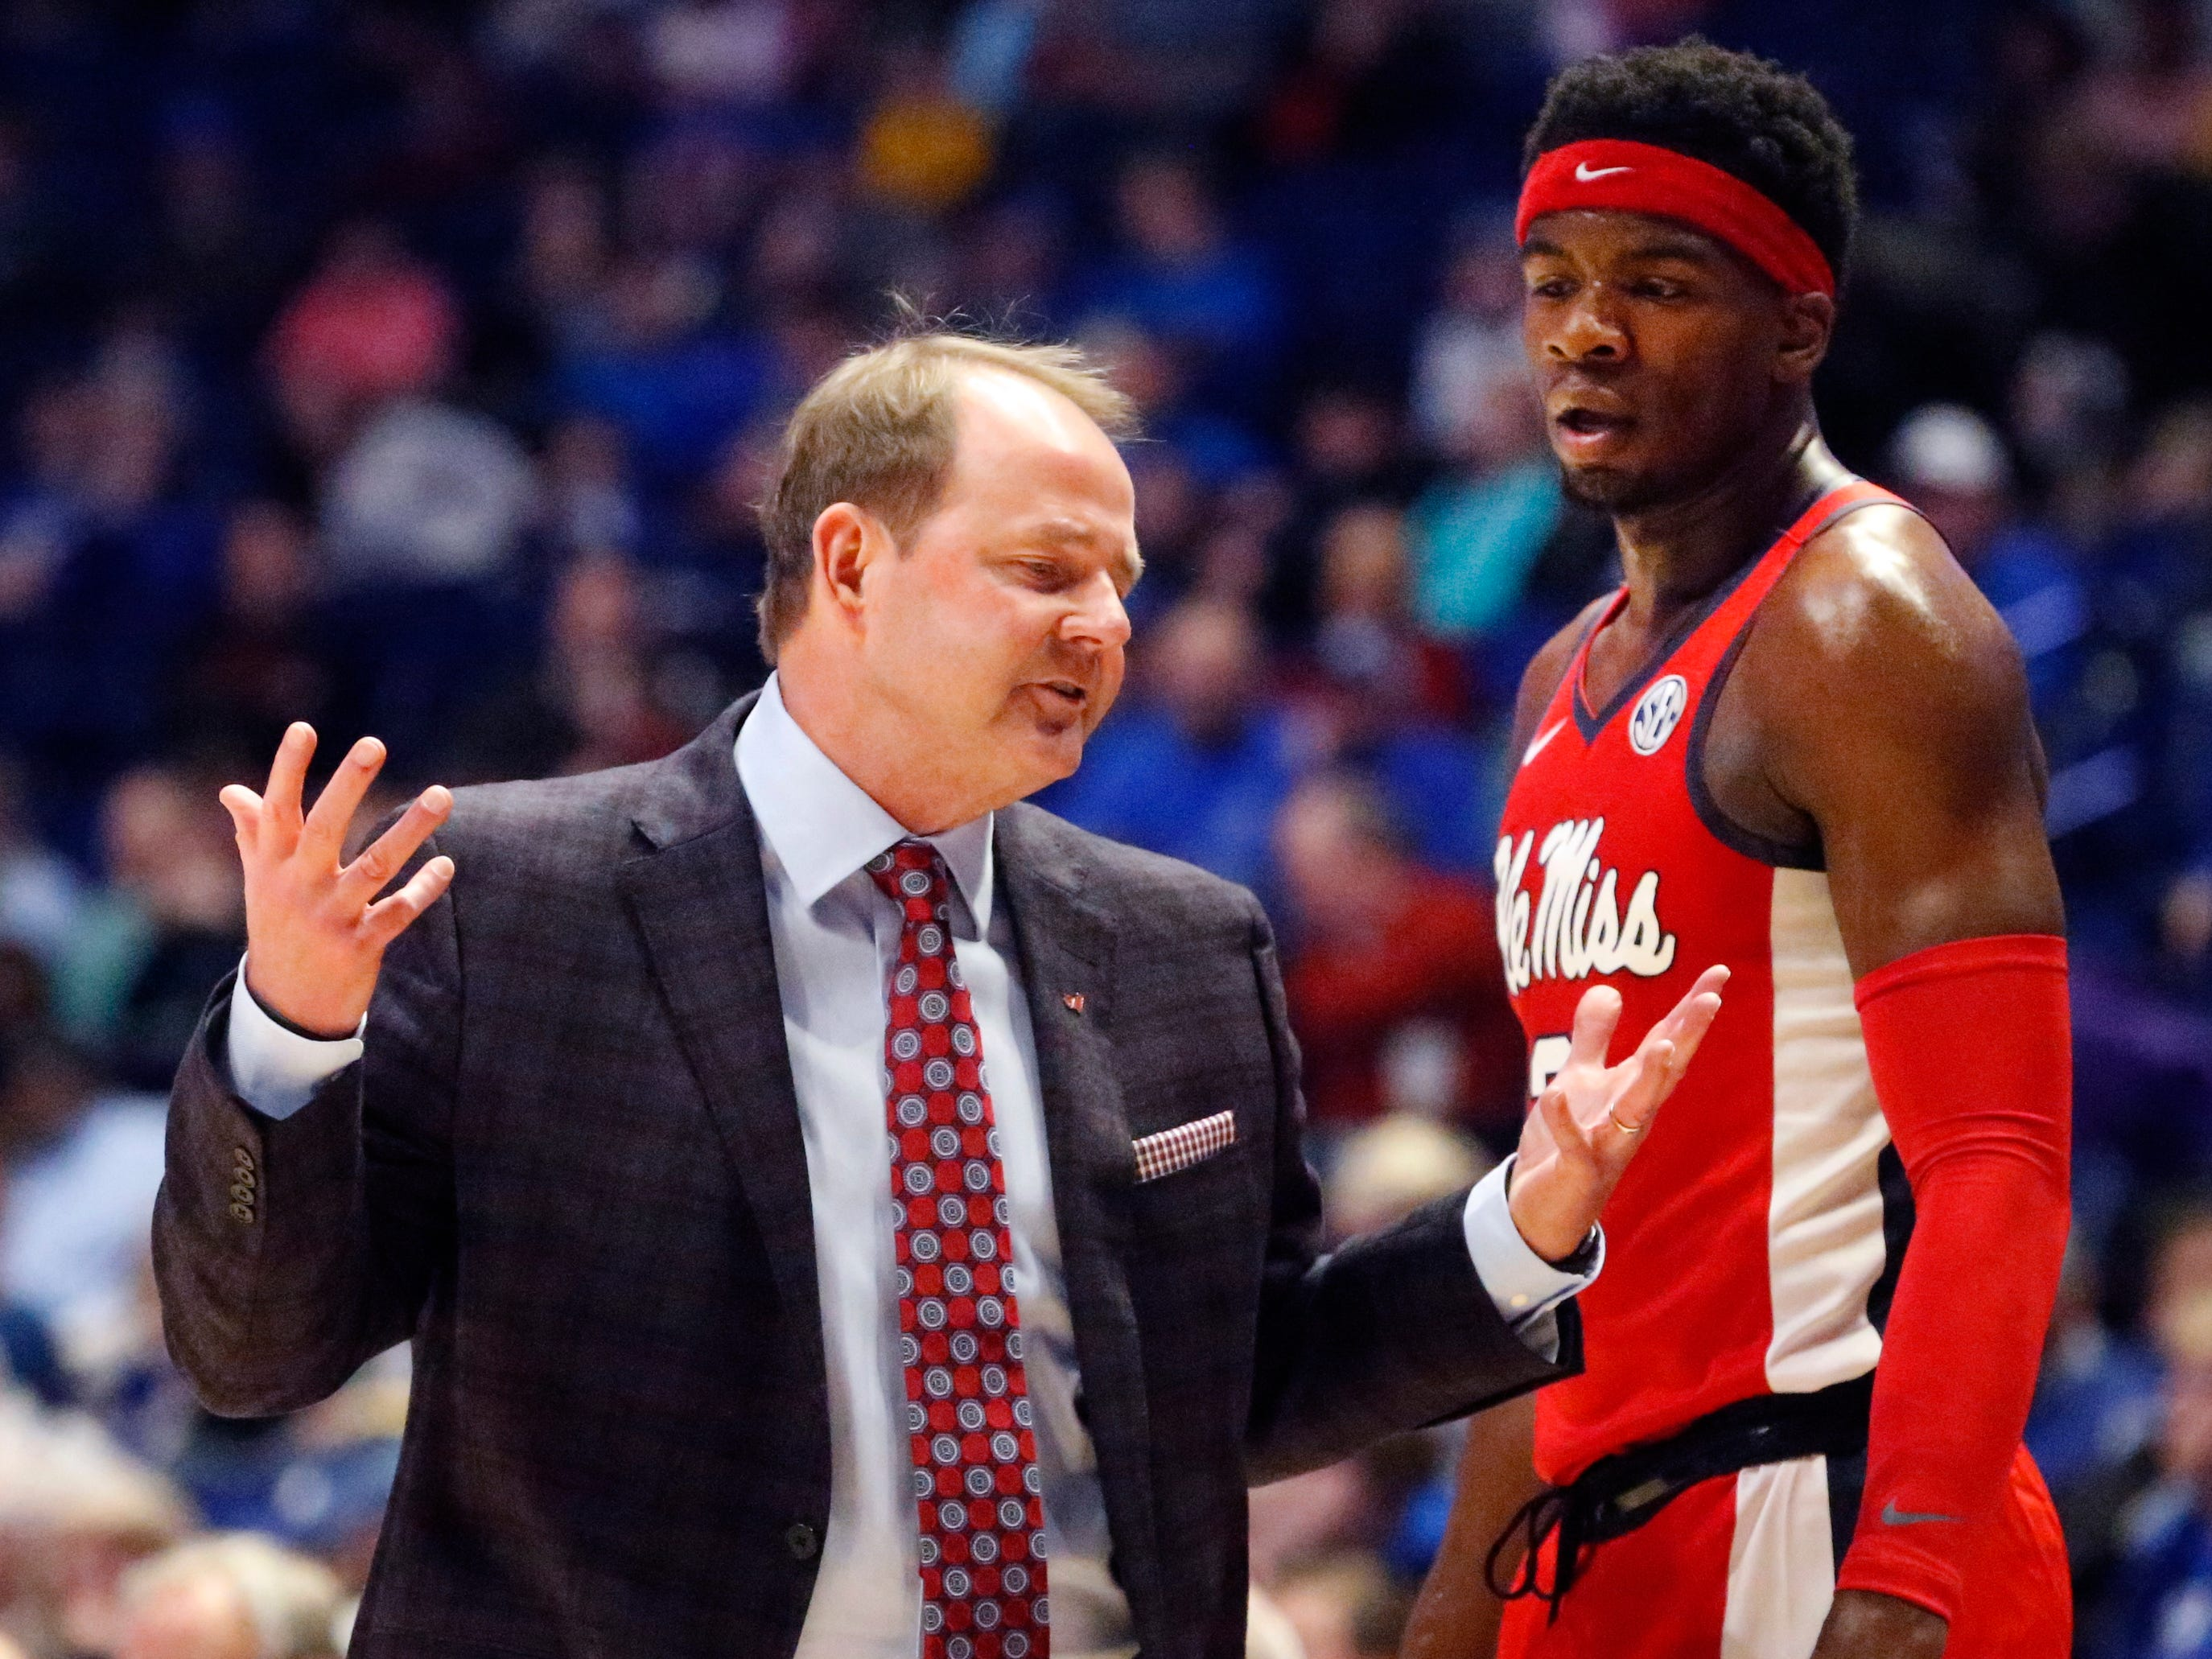 Ole Miss' head coach Kermit Davis talks with Ole Miss' guard Terence Davis (3) on the sidelines during the game against MTSU on Friday Dec. 21, 2018, at Bridgestone Arena.